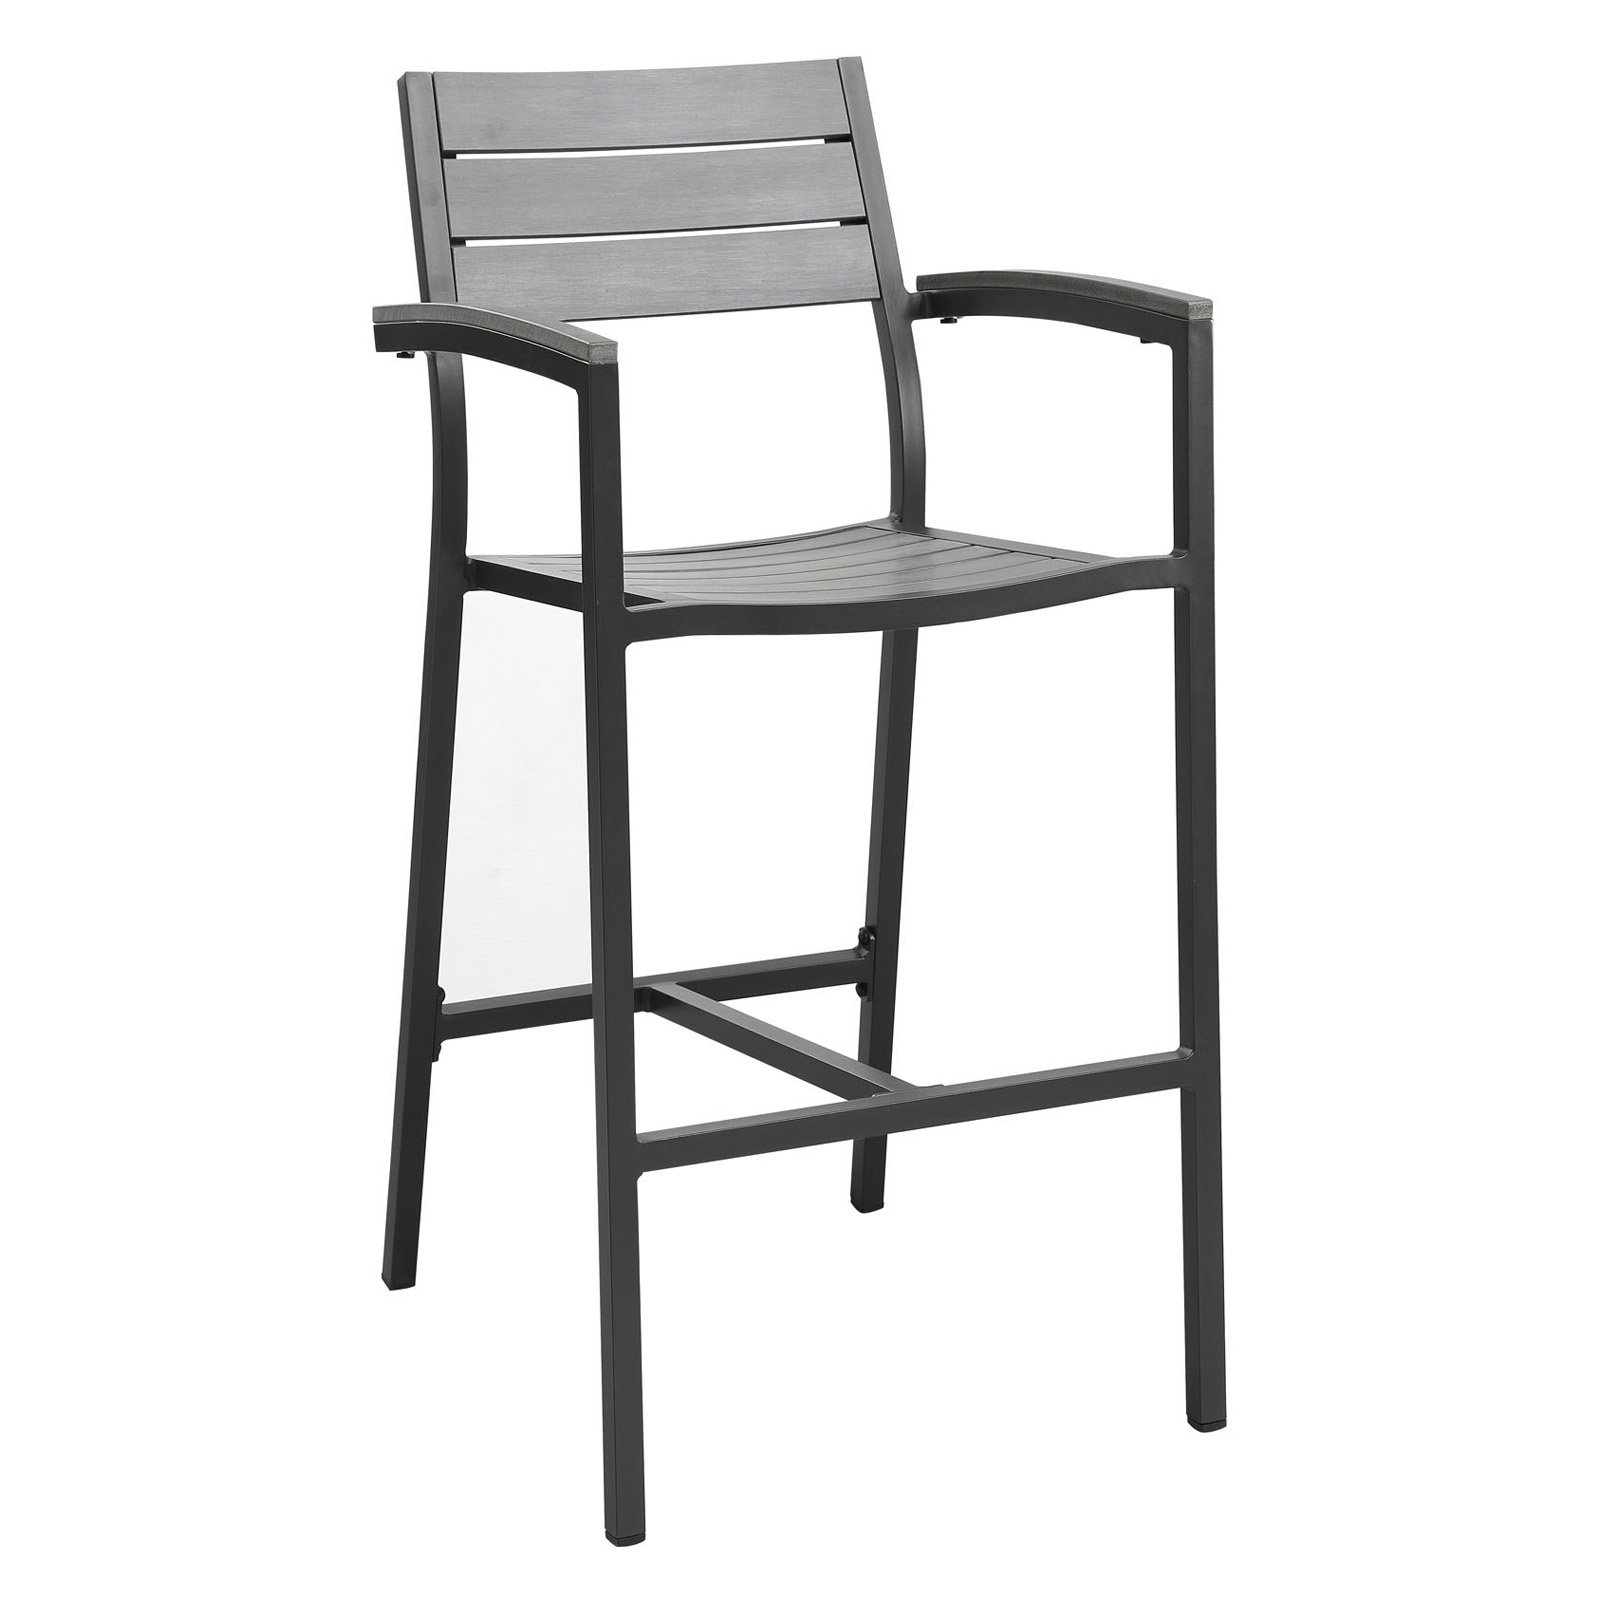 Modway Maine Outdoor Patio Bar Stool, Multiple Colors